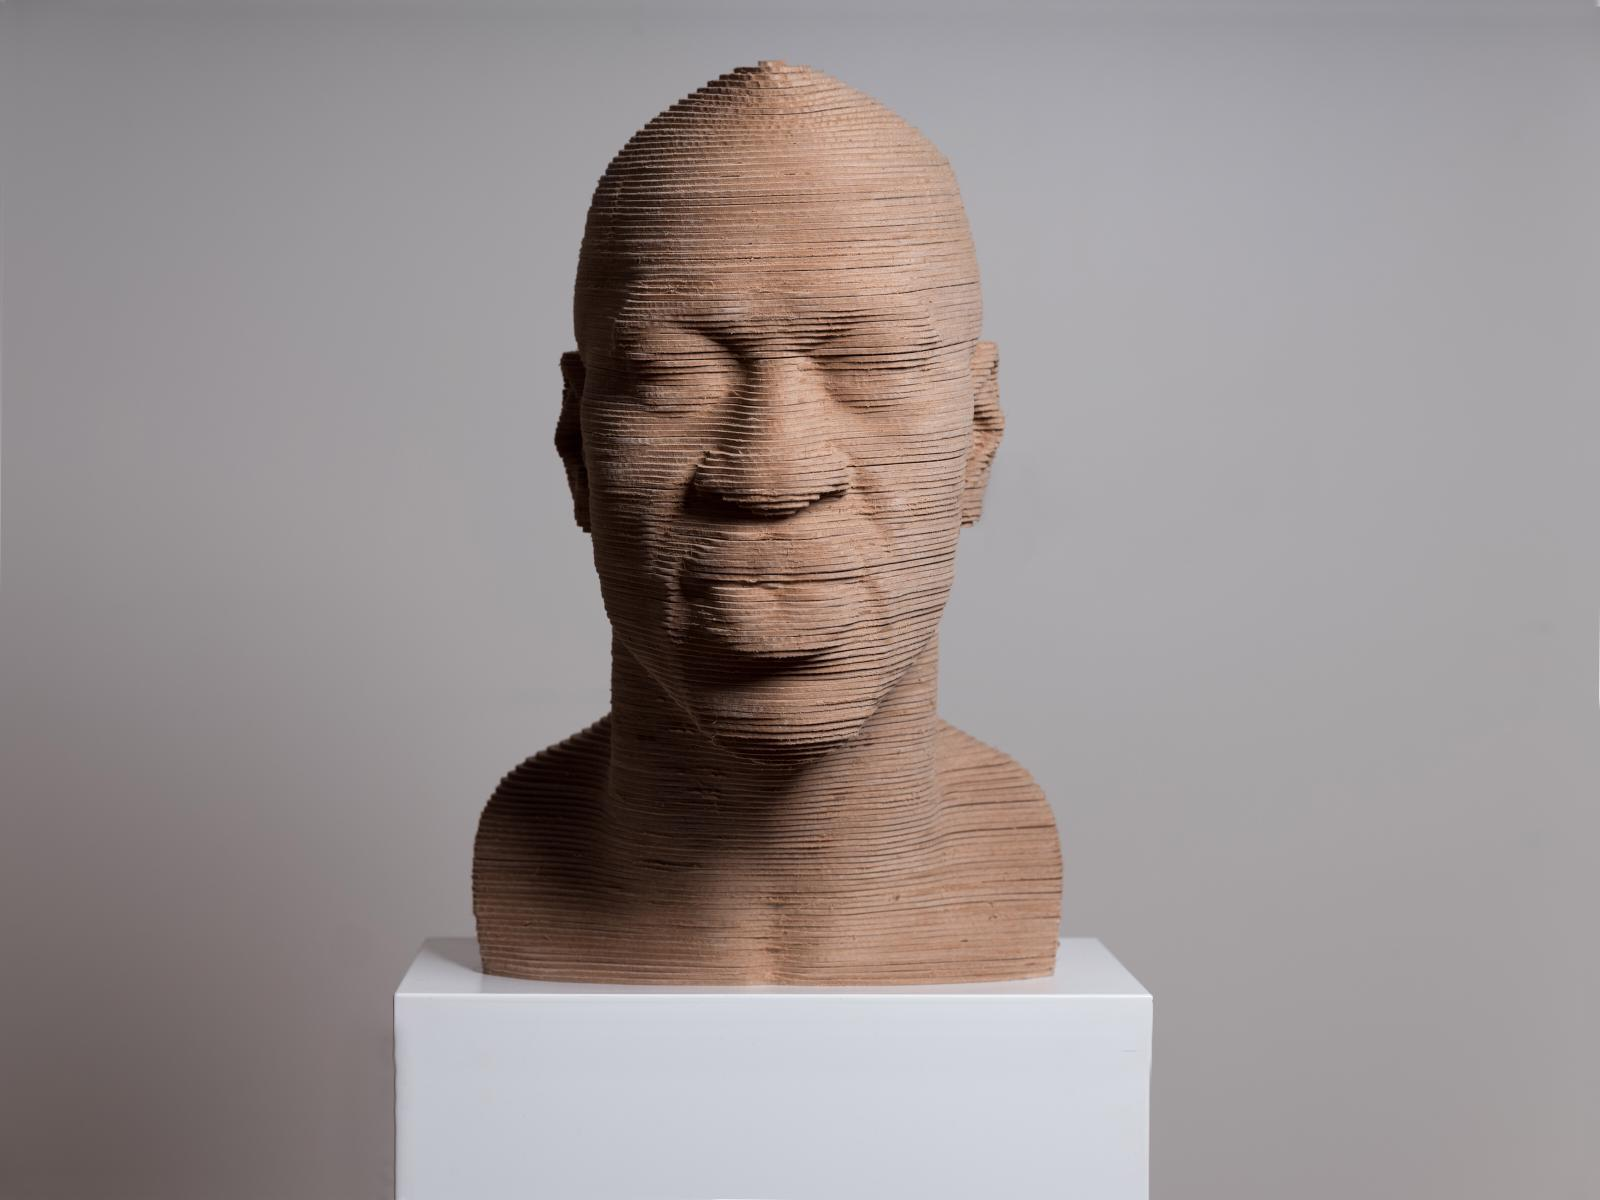 George Floyd Bust Sculpture Looking Forward. Made of layered wood on a white marble base.